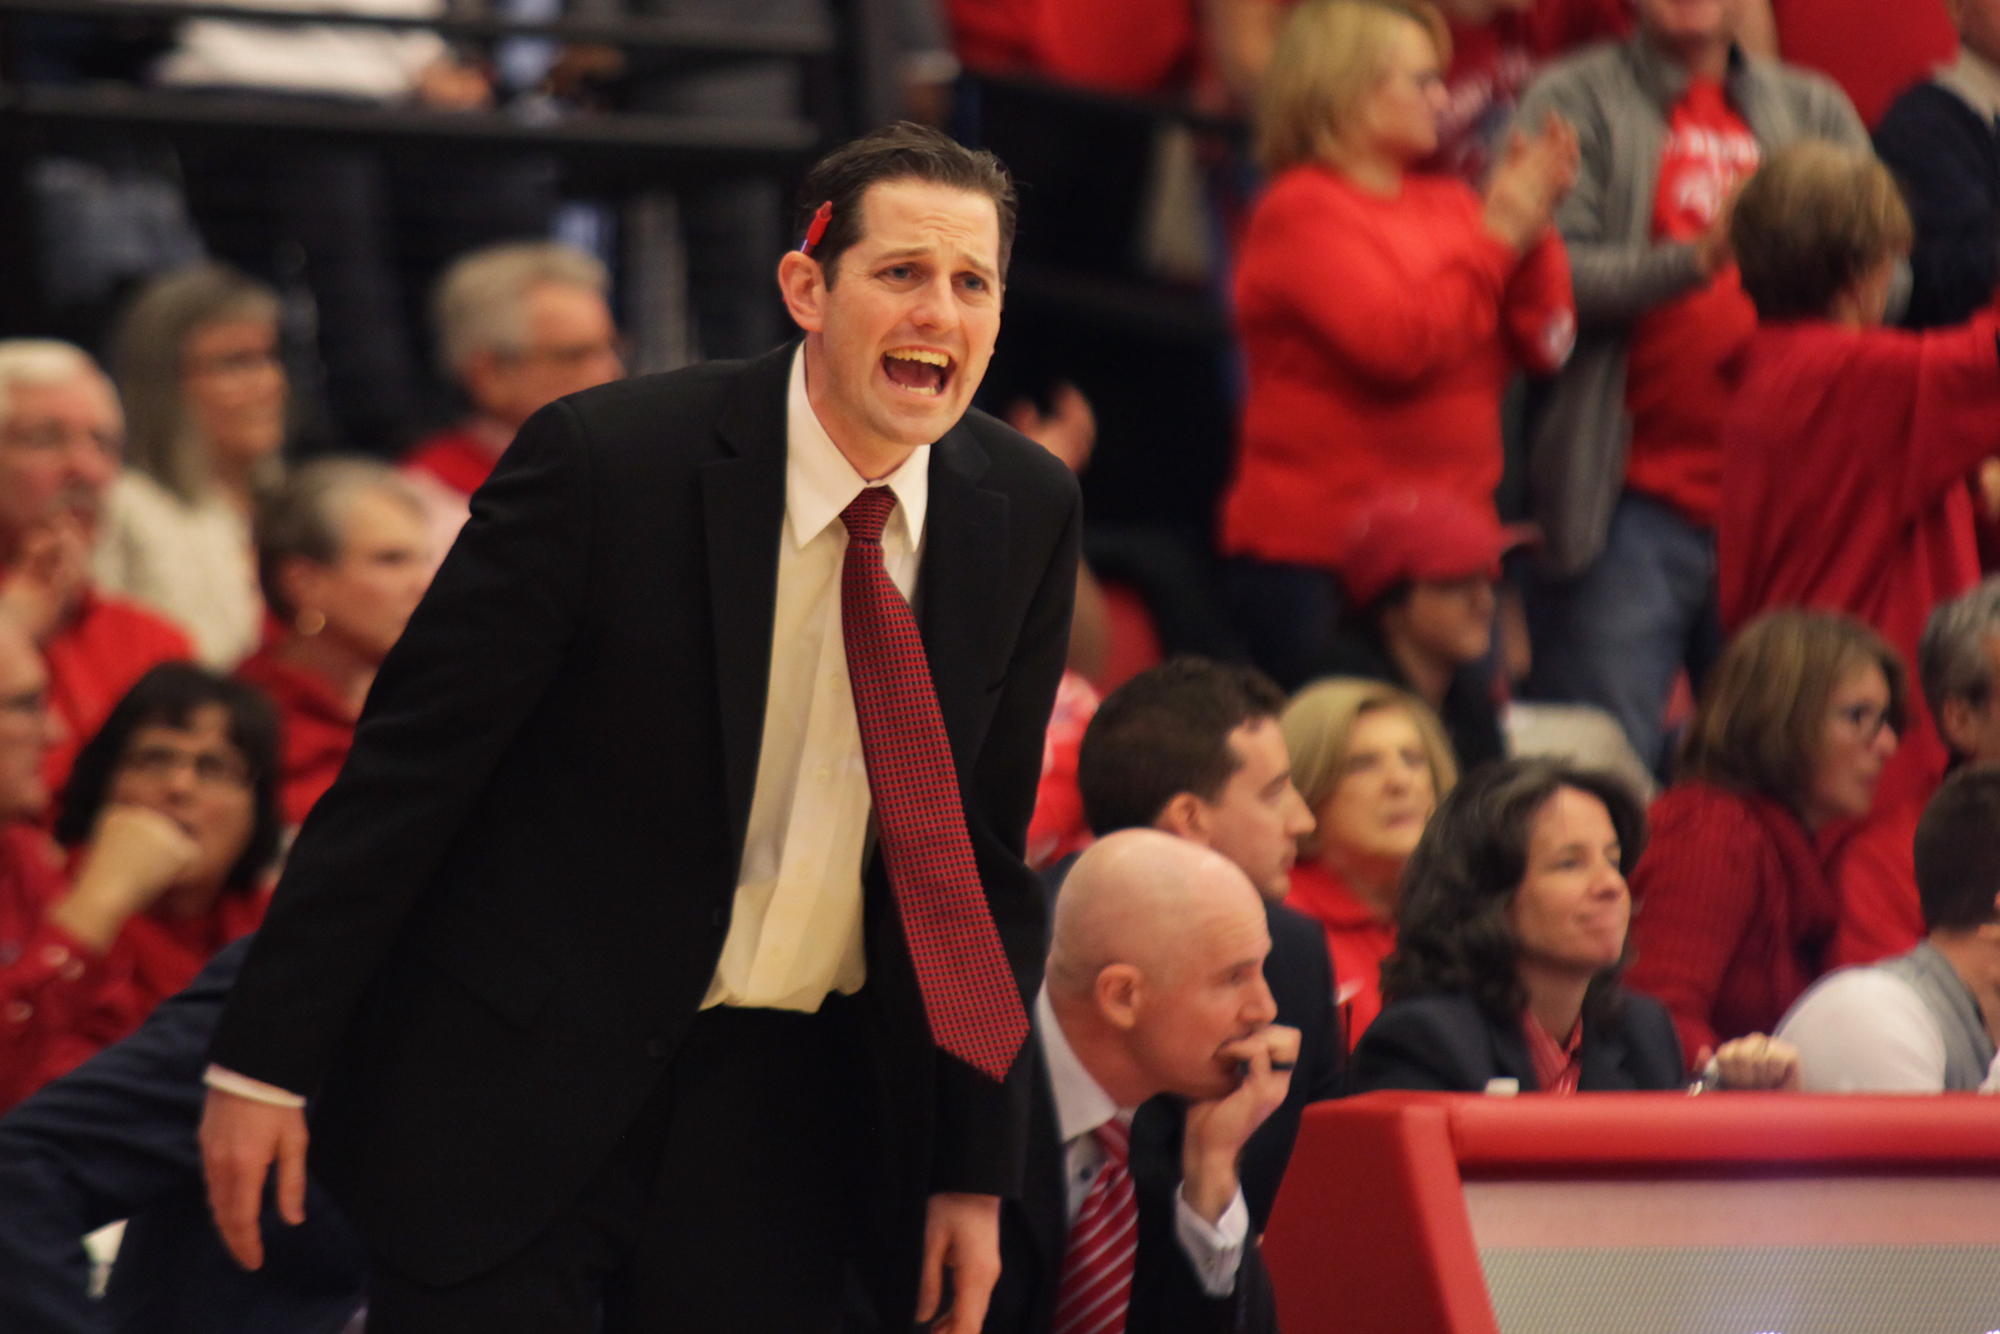 Stony Brook Men's Basketball Assistant Coach Dan Rickard shouts commands from the sideline as the Seawolves pushes back the Catamounts' lead during their championship game. CHRISTOPHER CAMERON/THE STATESMAN